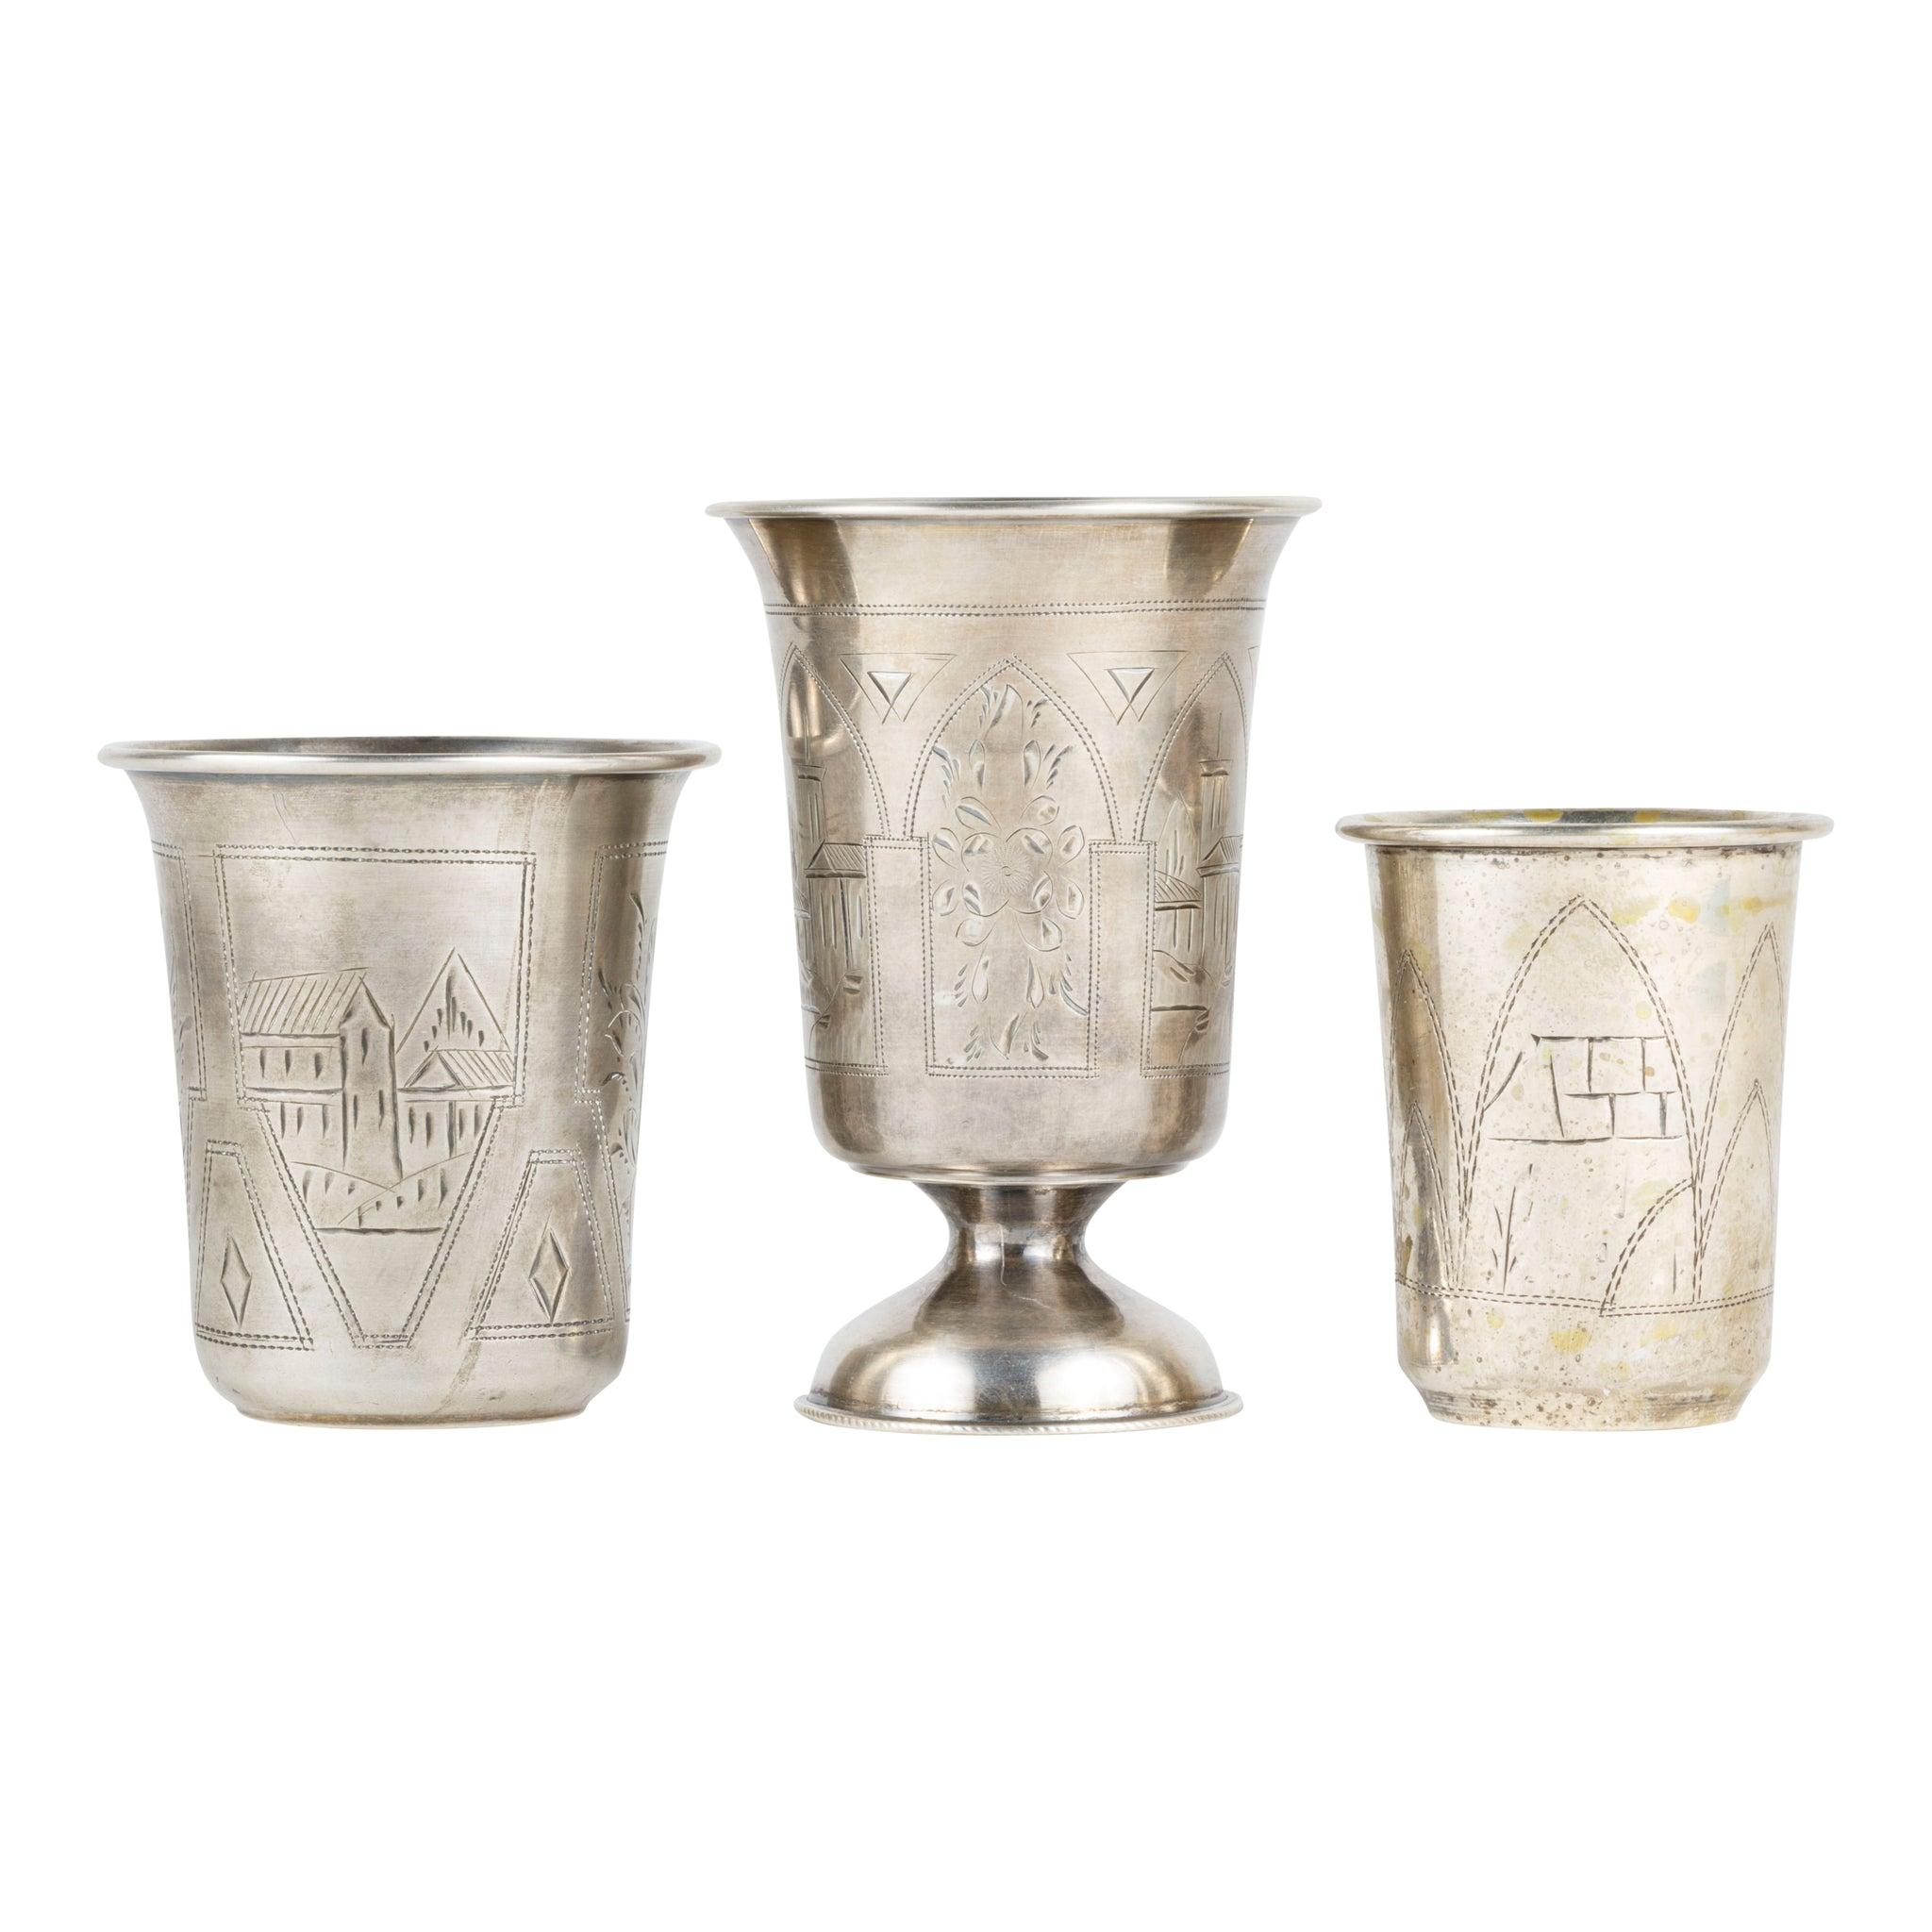 Collection of Sterling Tumblers barware, drinking, lodge furnishings: drinking: liquor related, shot glasses, sterling, tumblers